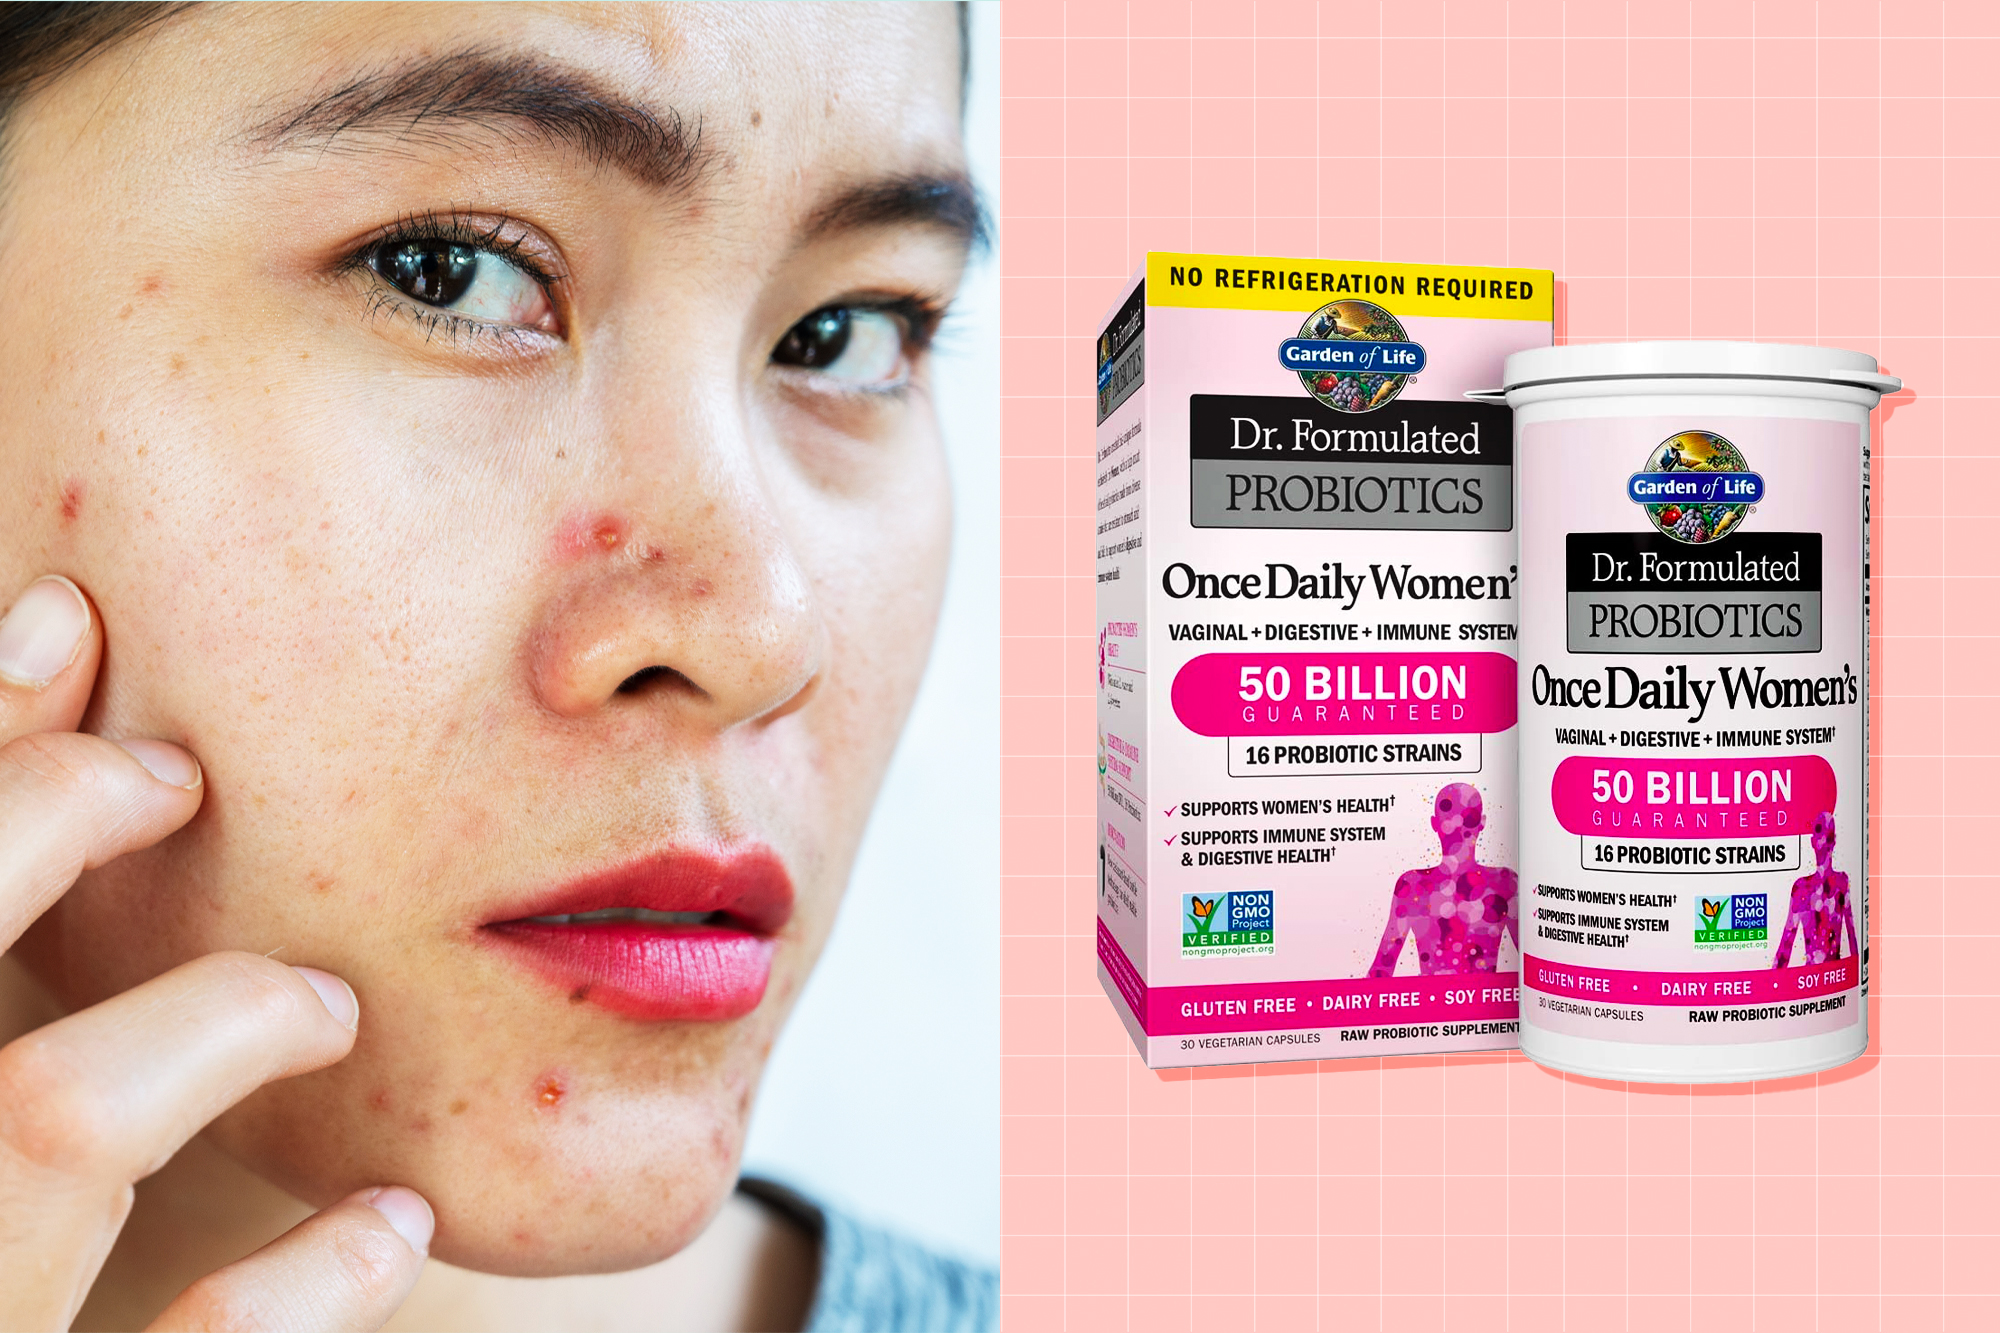 A close up of a woman with acne nextt to an image of Garden of Life Probiotic Supplement Capsules for Women